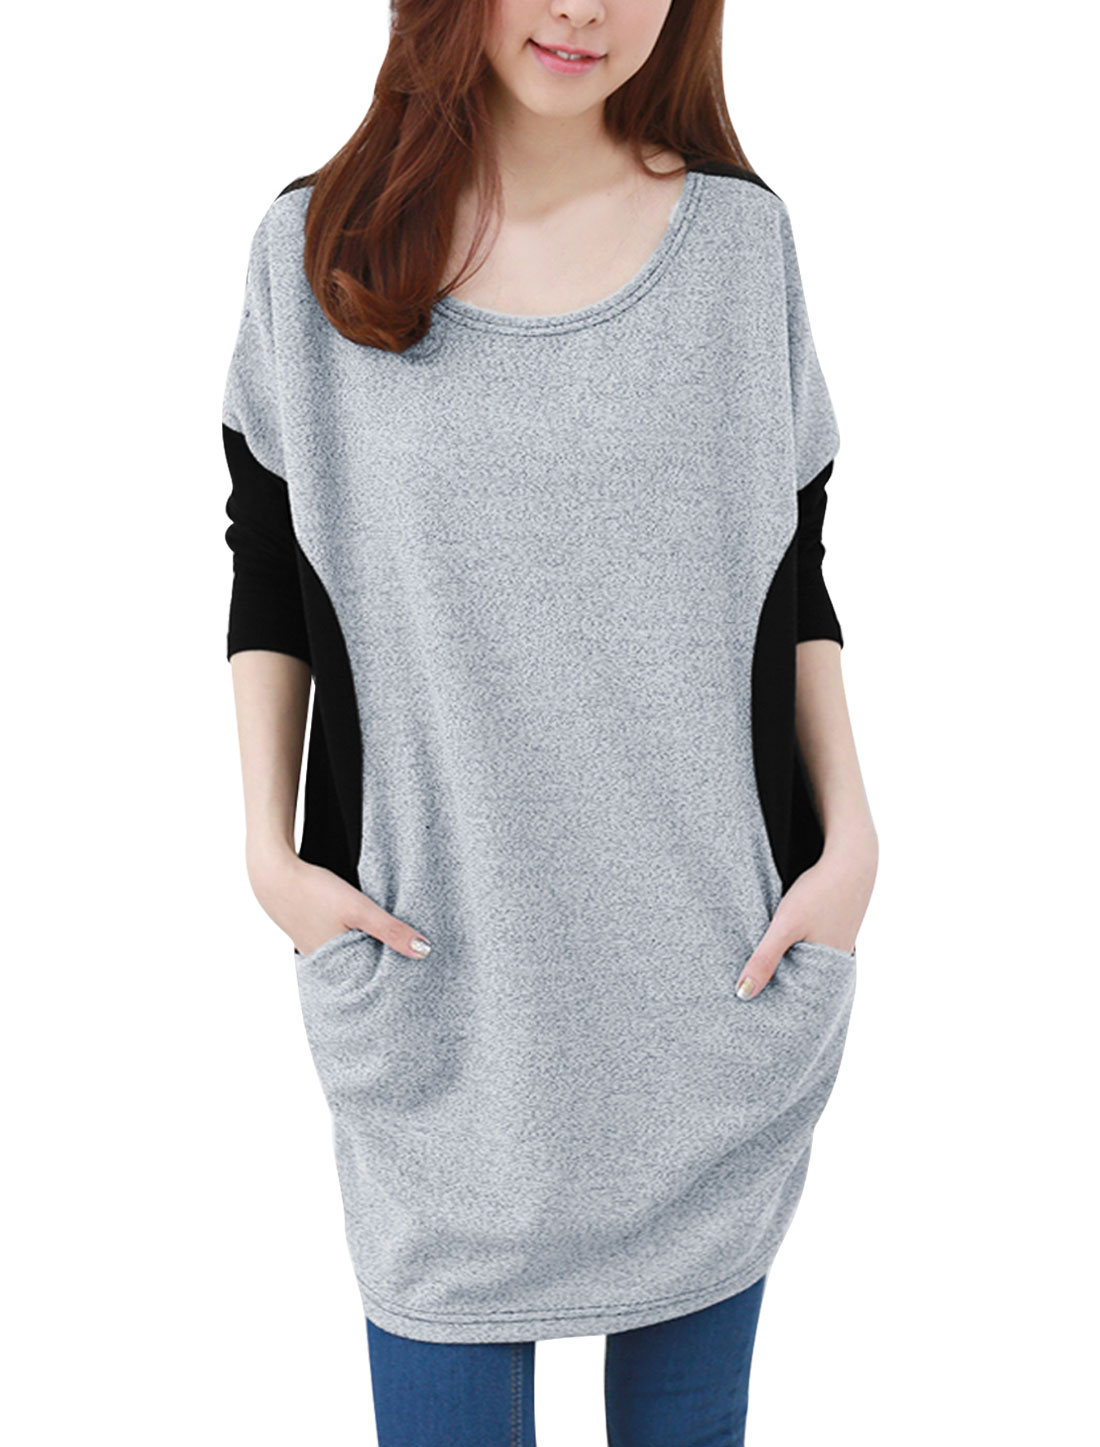 Lady Scoop Neck Long Batwing Sleeve Two-tone Black Gray Tunic Shirt S